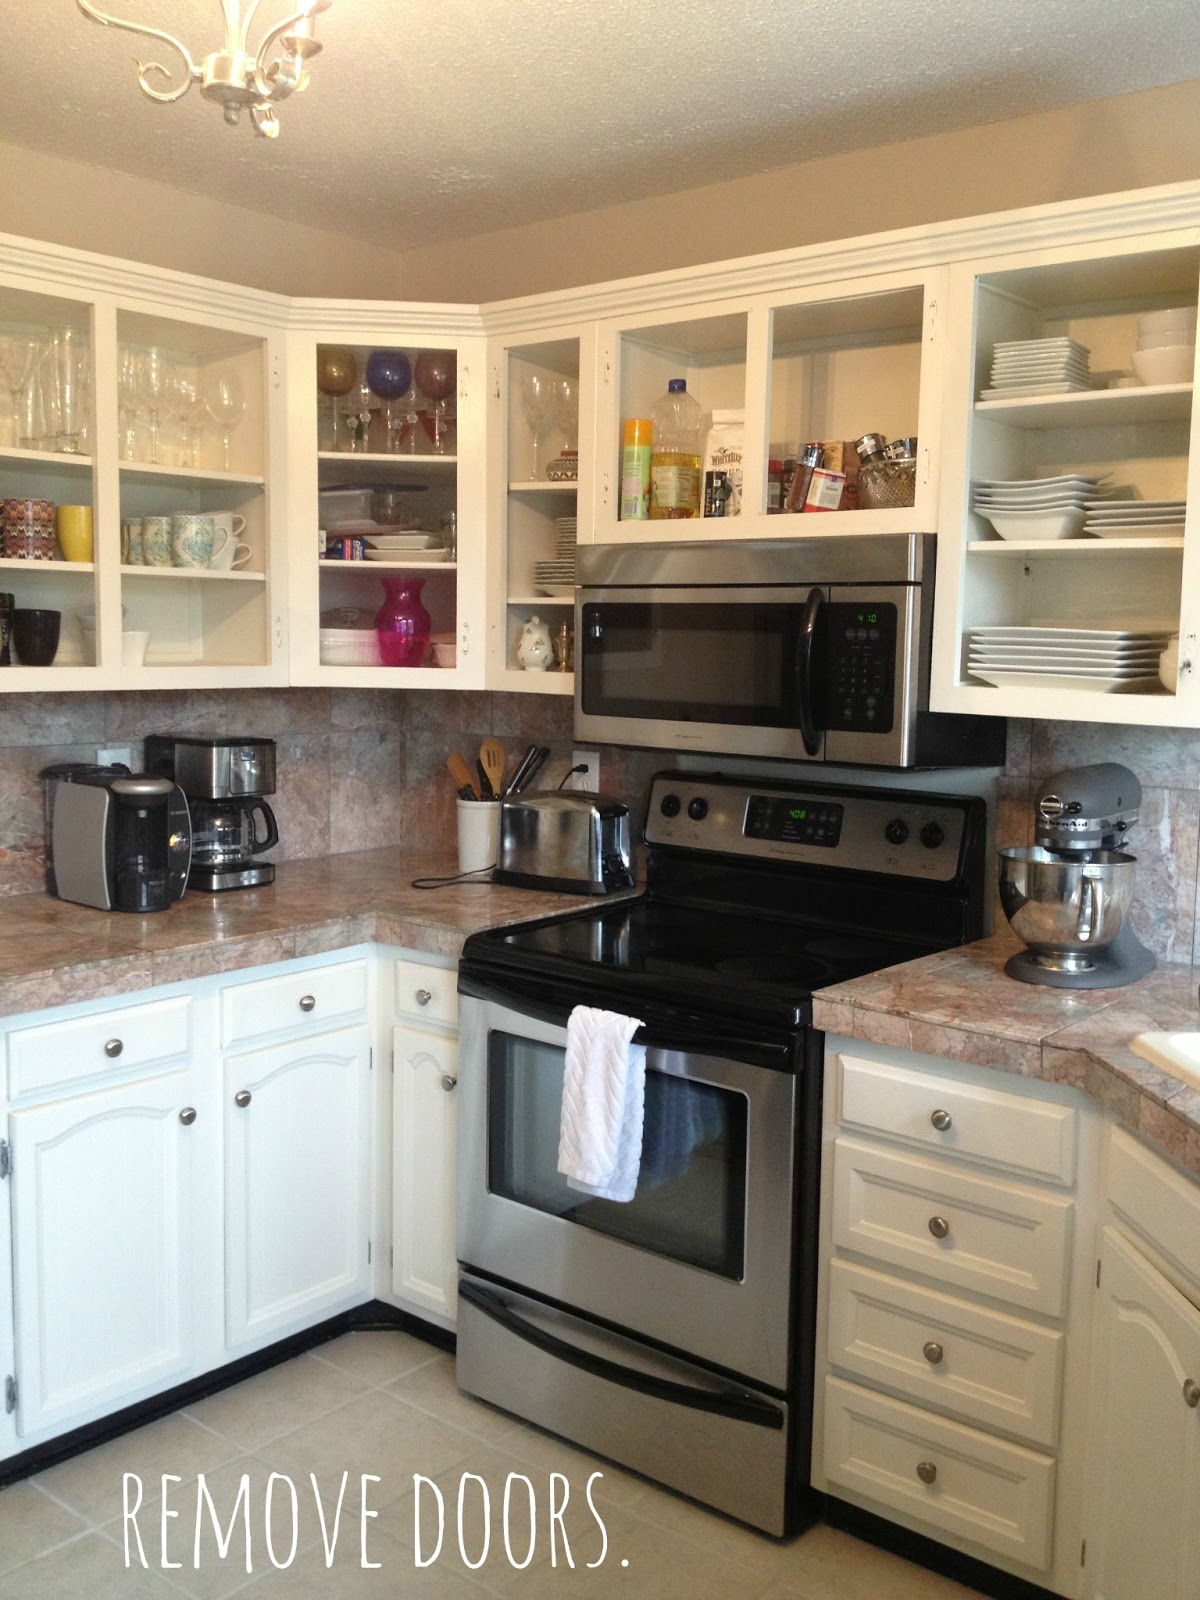 10 easy steps to paint kitchen cabinets kitchen cabinet doors replacement LiveLoveDIY